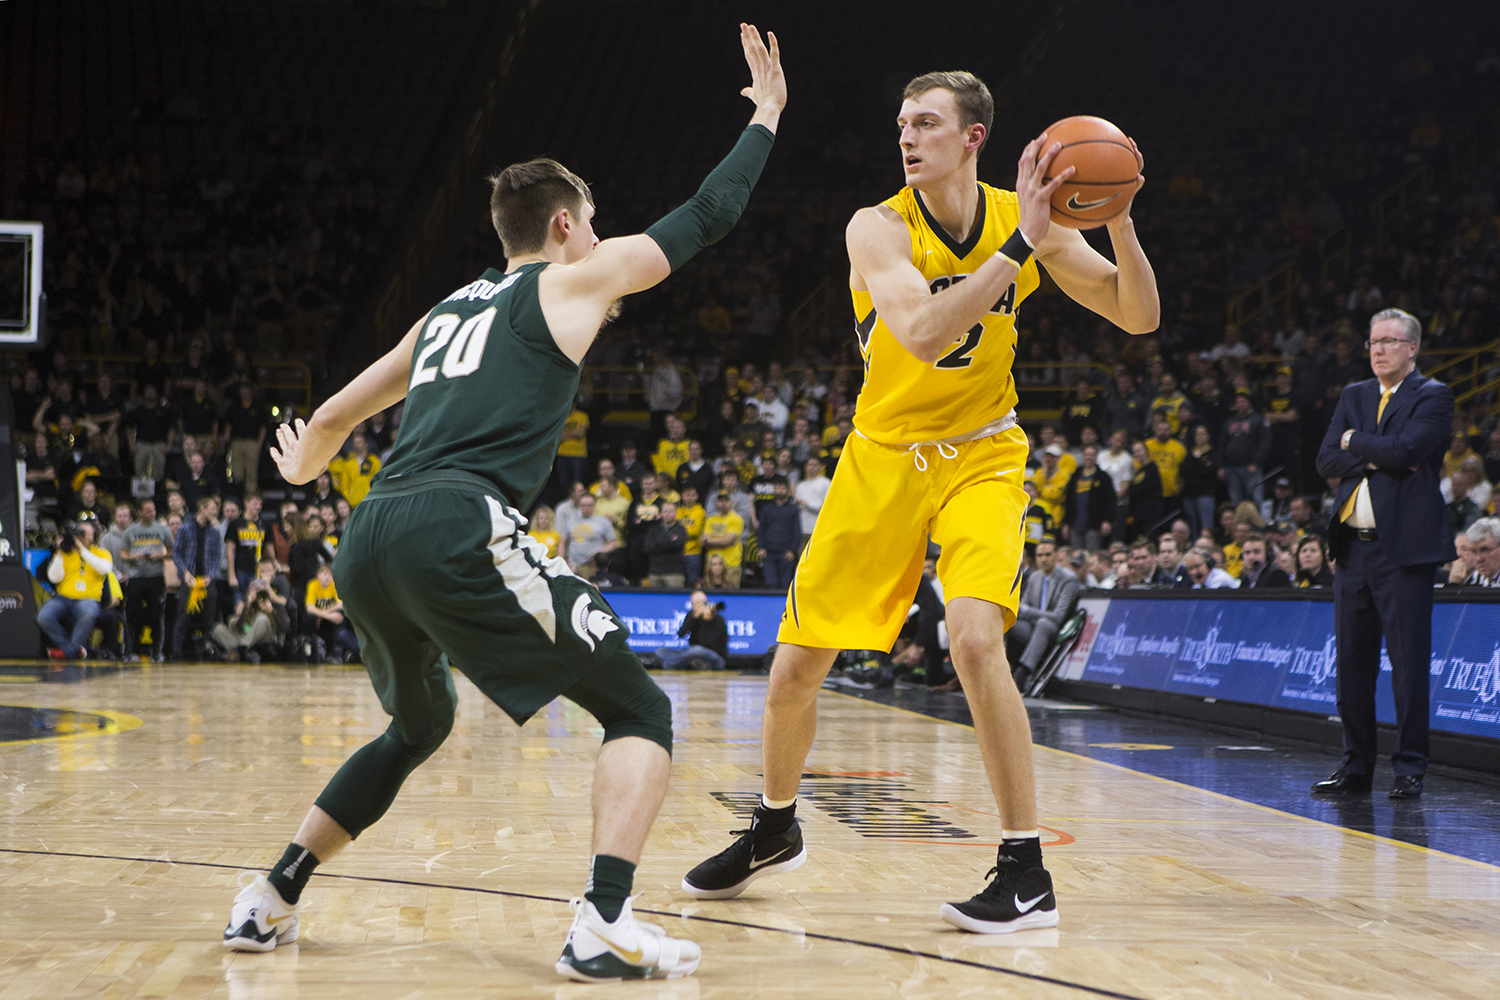 Iowa F Jack Nunge faces off with Michigan State G Matt McQuaid (20) during a basketball game between Iowa and Michigan State at Carver-Hawkeye Arena on Tuesday, Feb. 6, 2018. The Hawkeyes were defeated by the visiting Spartans, 96-93.